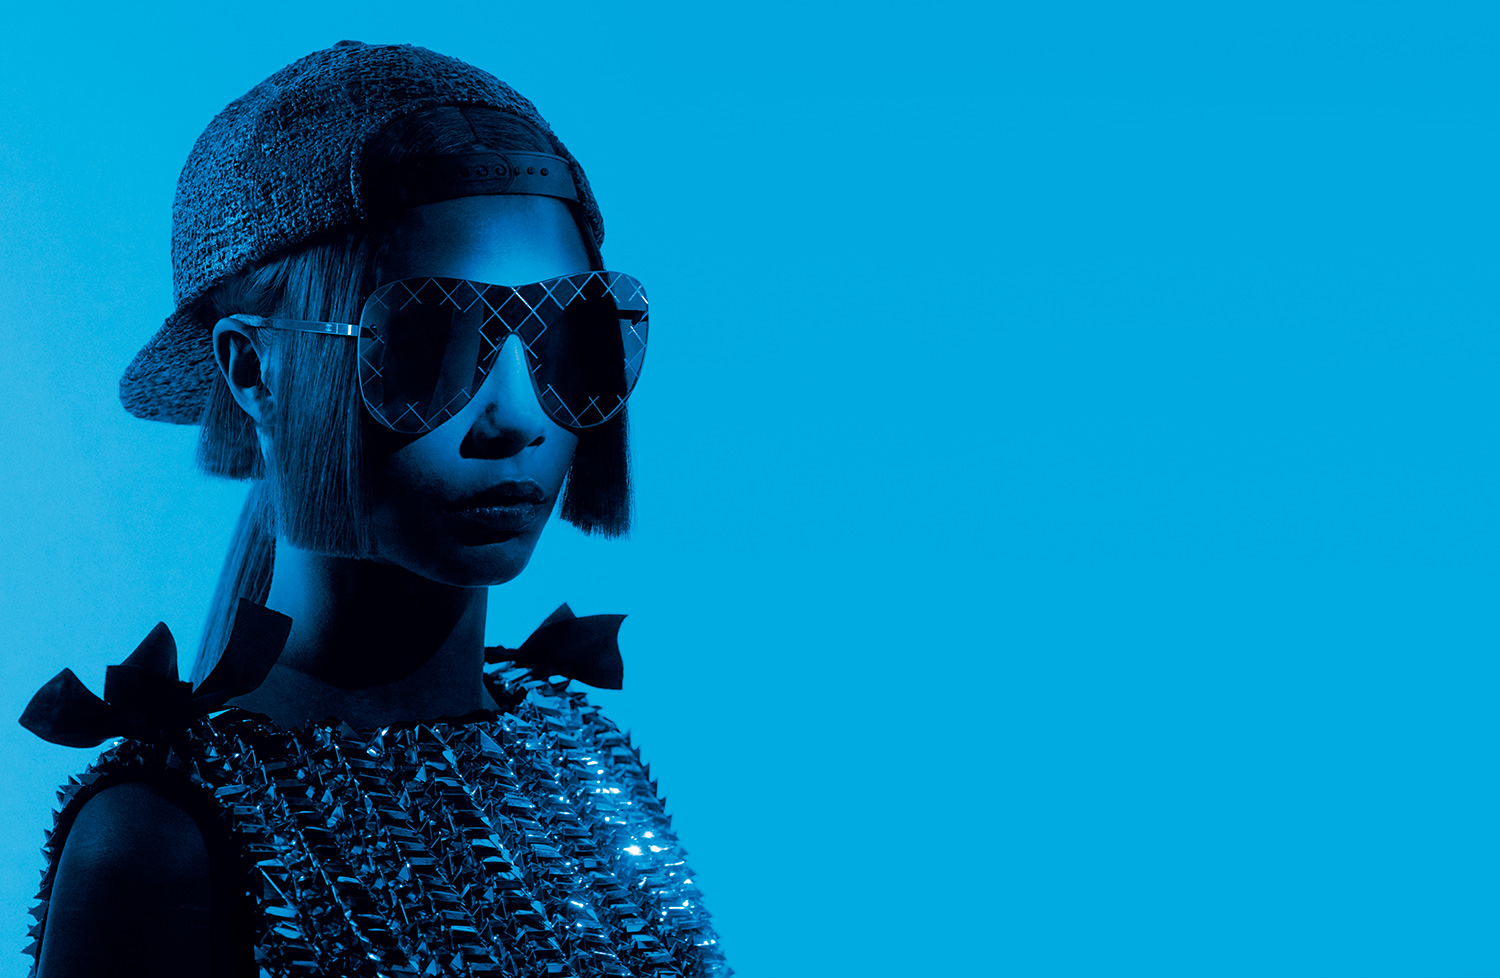 62b357378a14 ChanelSS2016 01 Spring-Summer 2016 eyewear collection ad campaign -  Pictures by Karl Lagerfeld LD